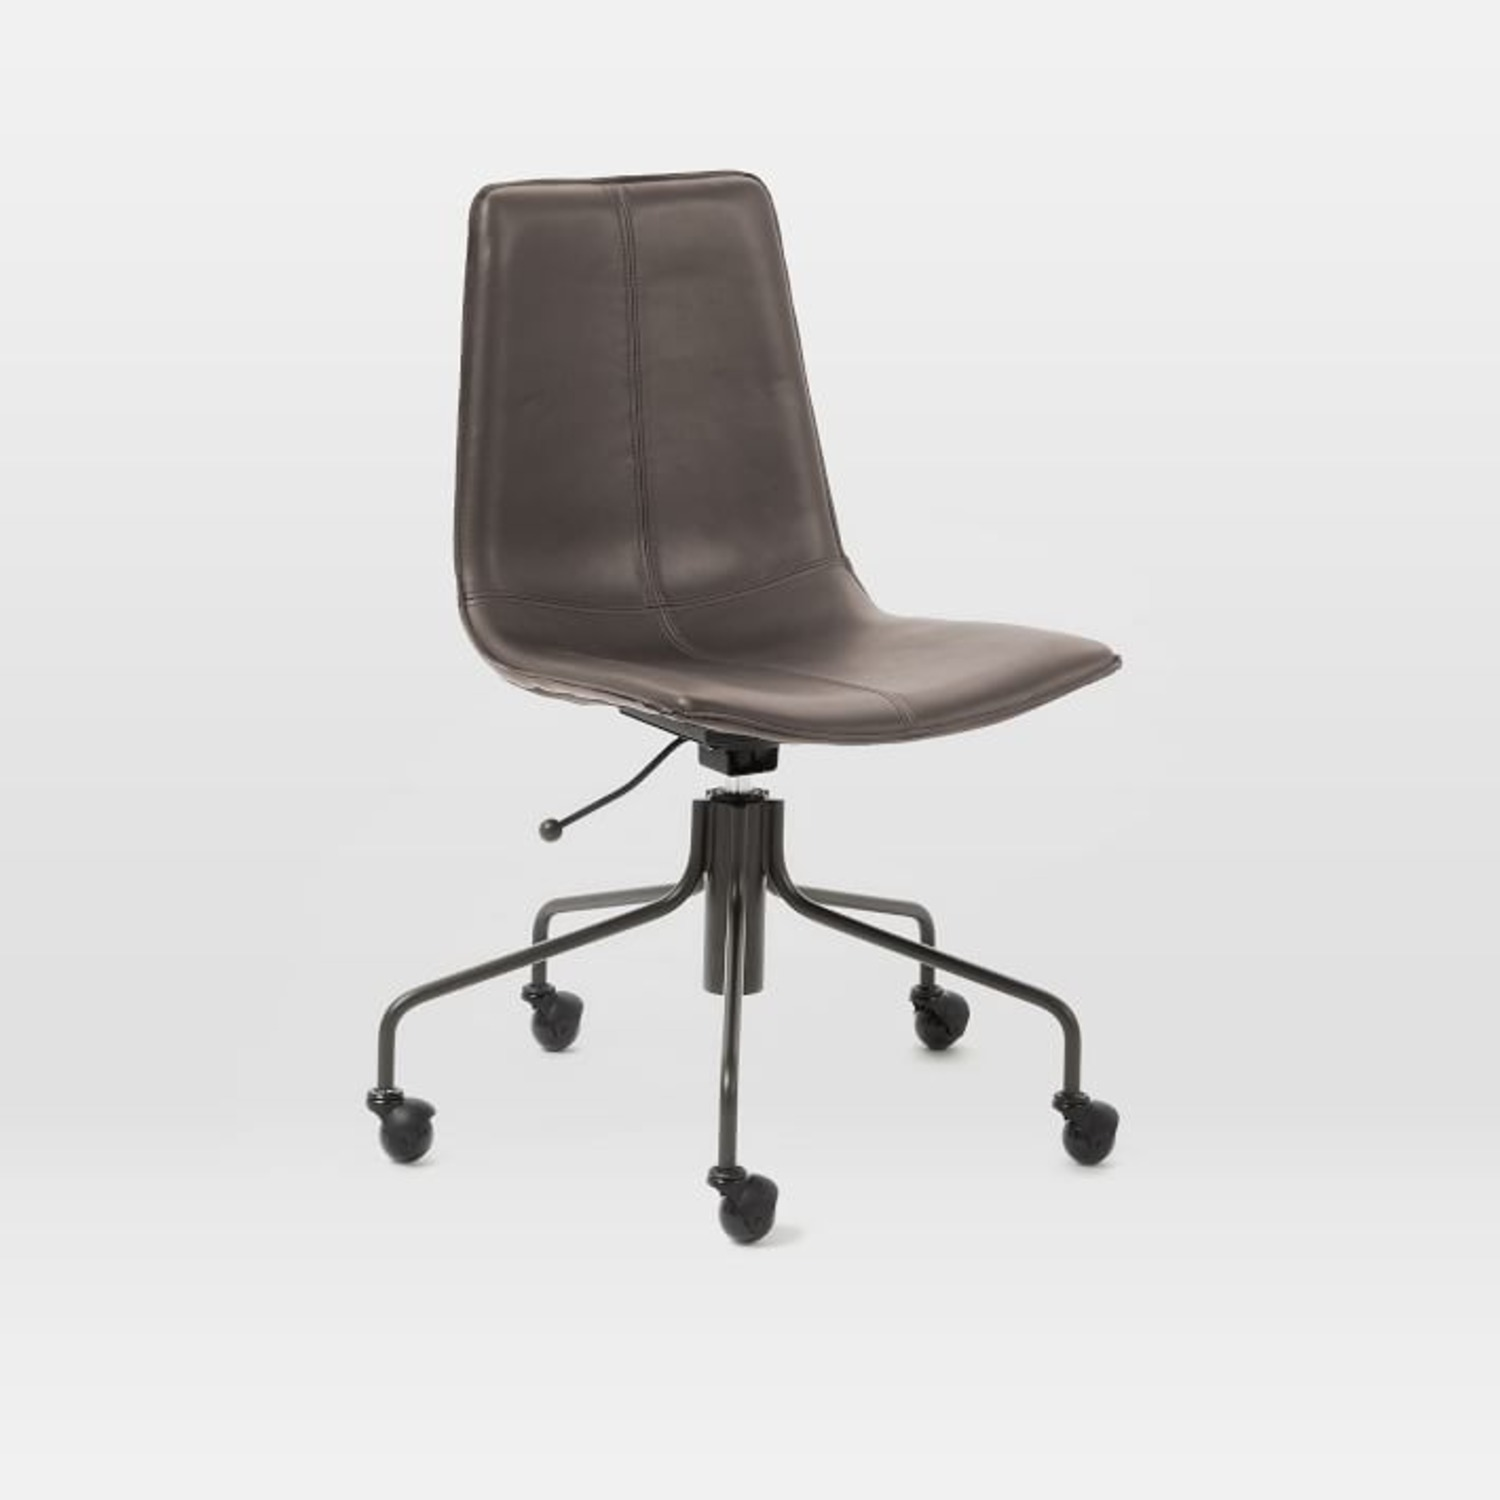 West Elm Slope Office Chair, Charcoal - image-1